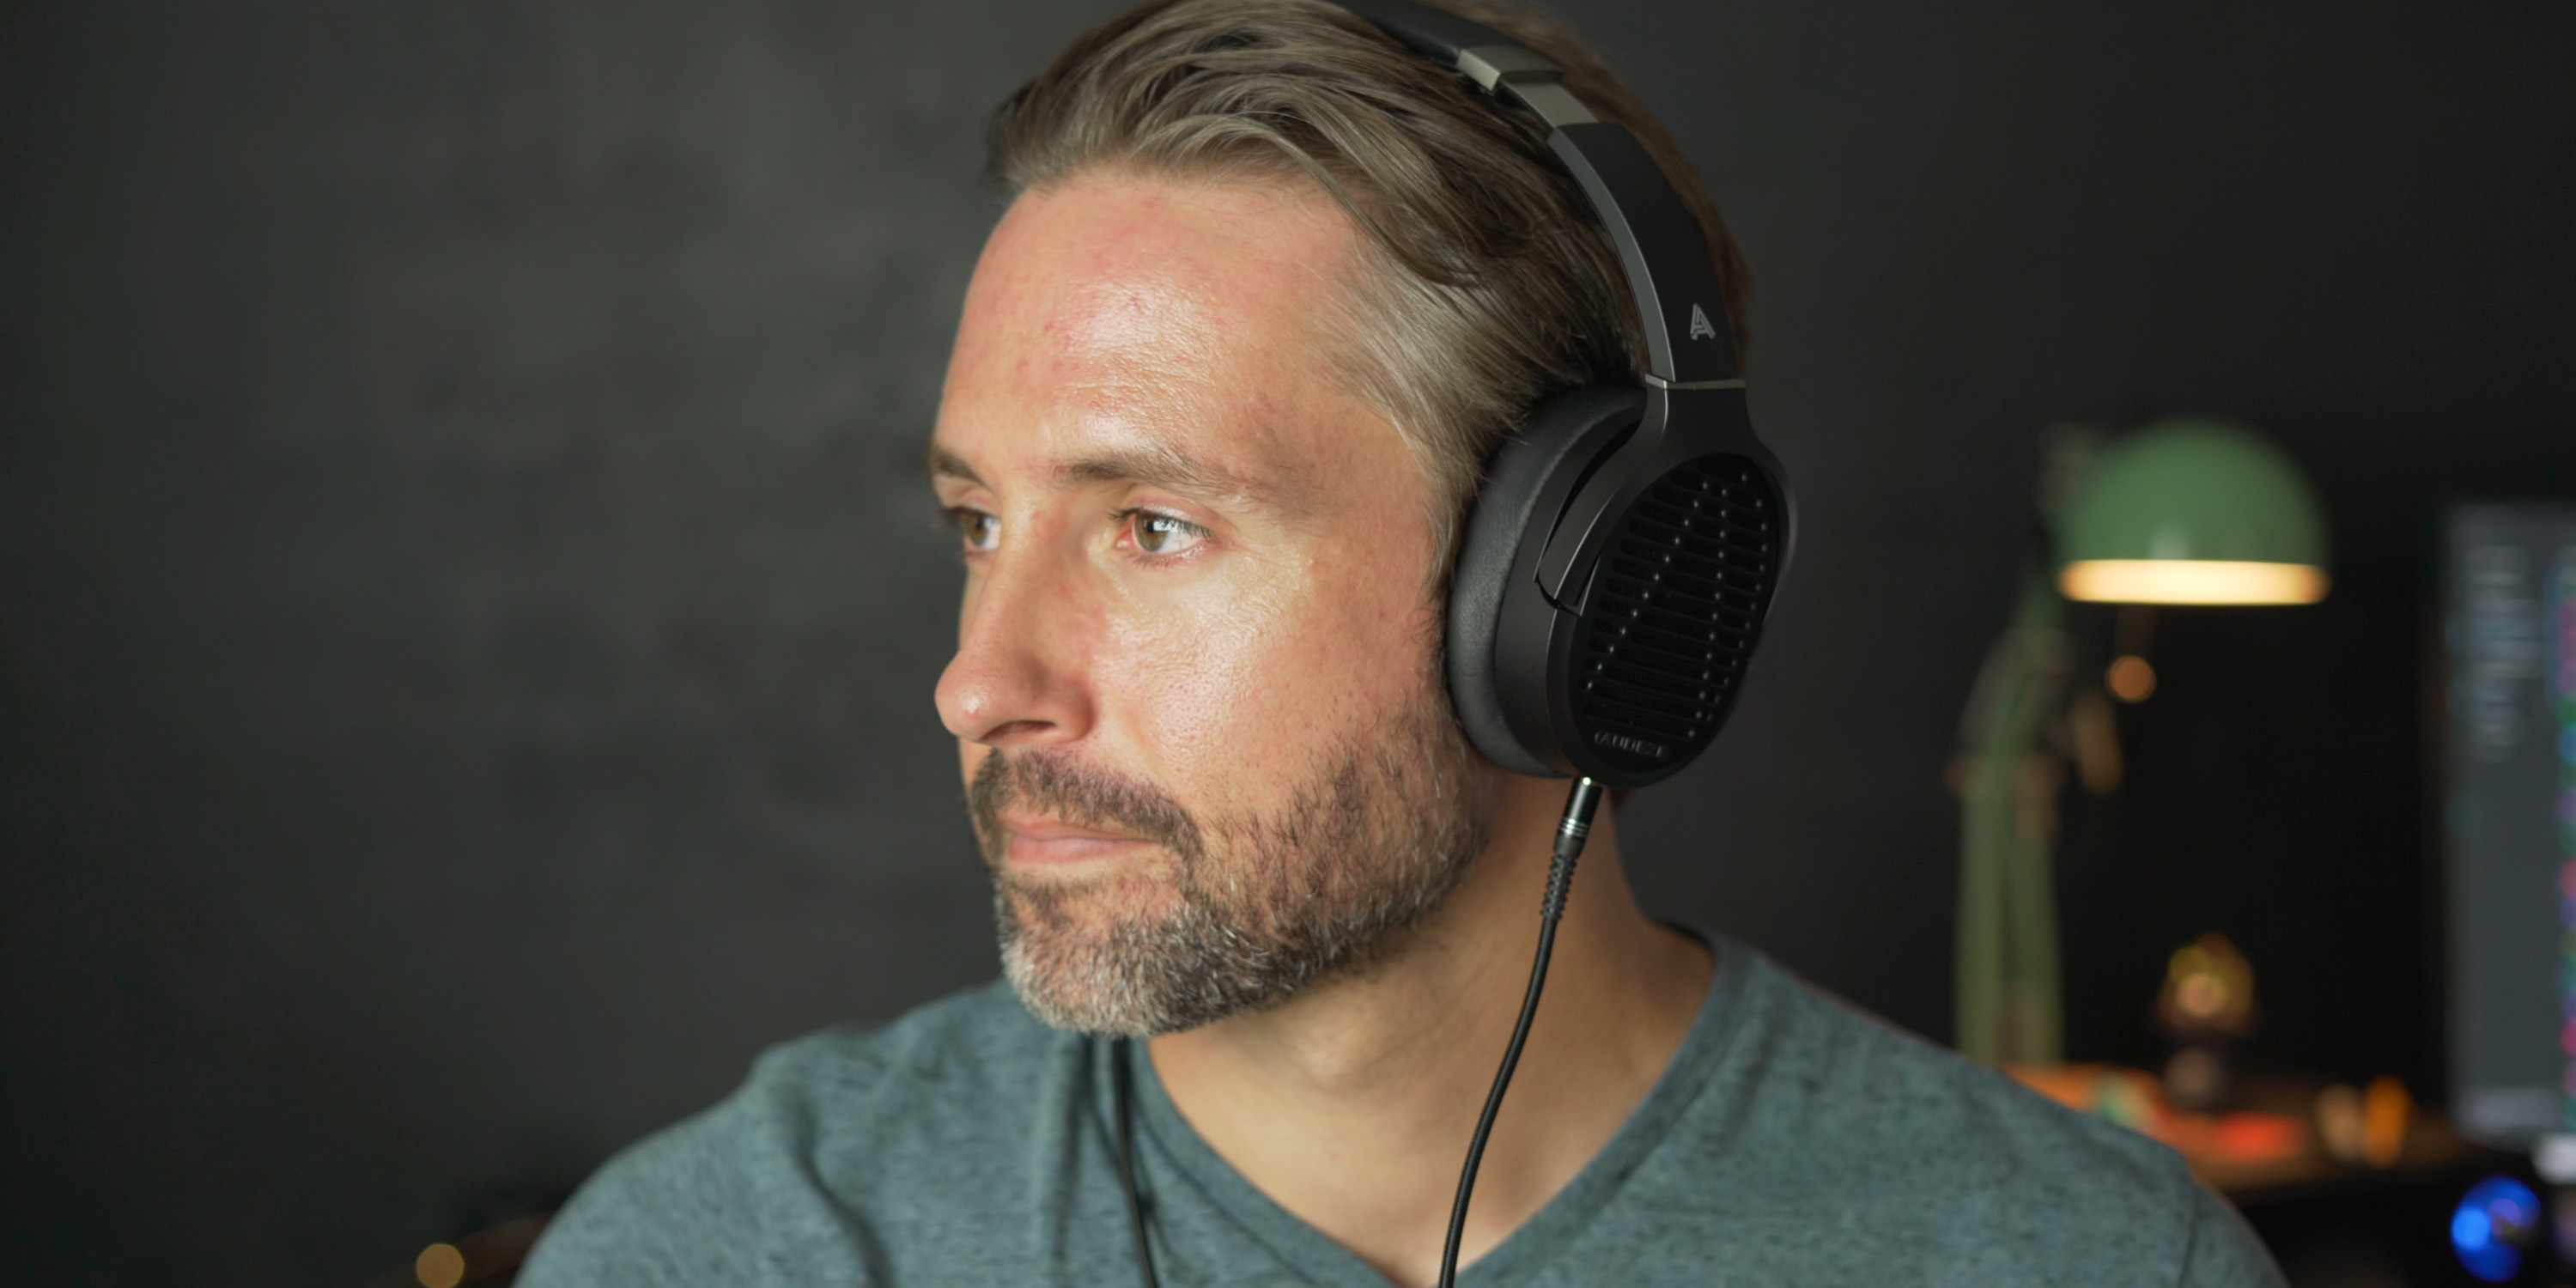 Listening to the Audeze LCD-1 headphones